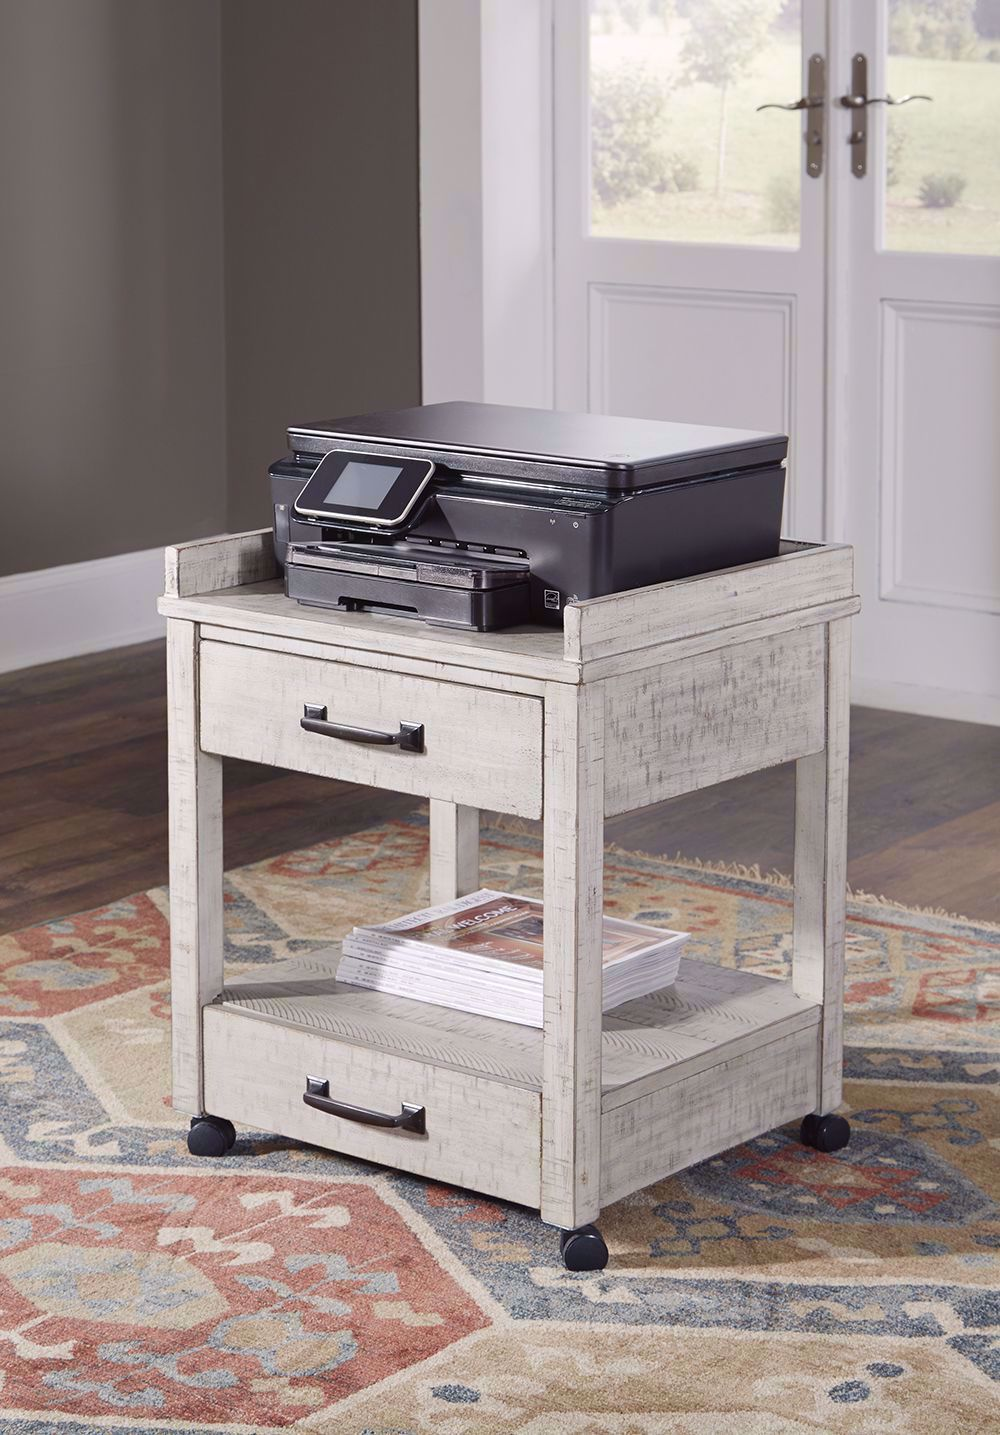 Picture of Carynhurst File and Printer Stand